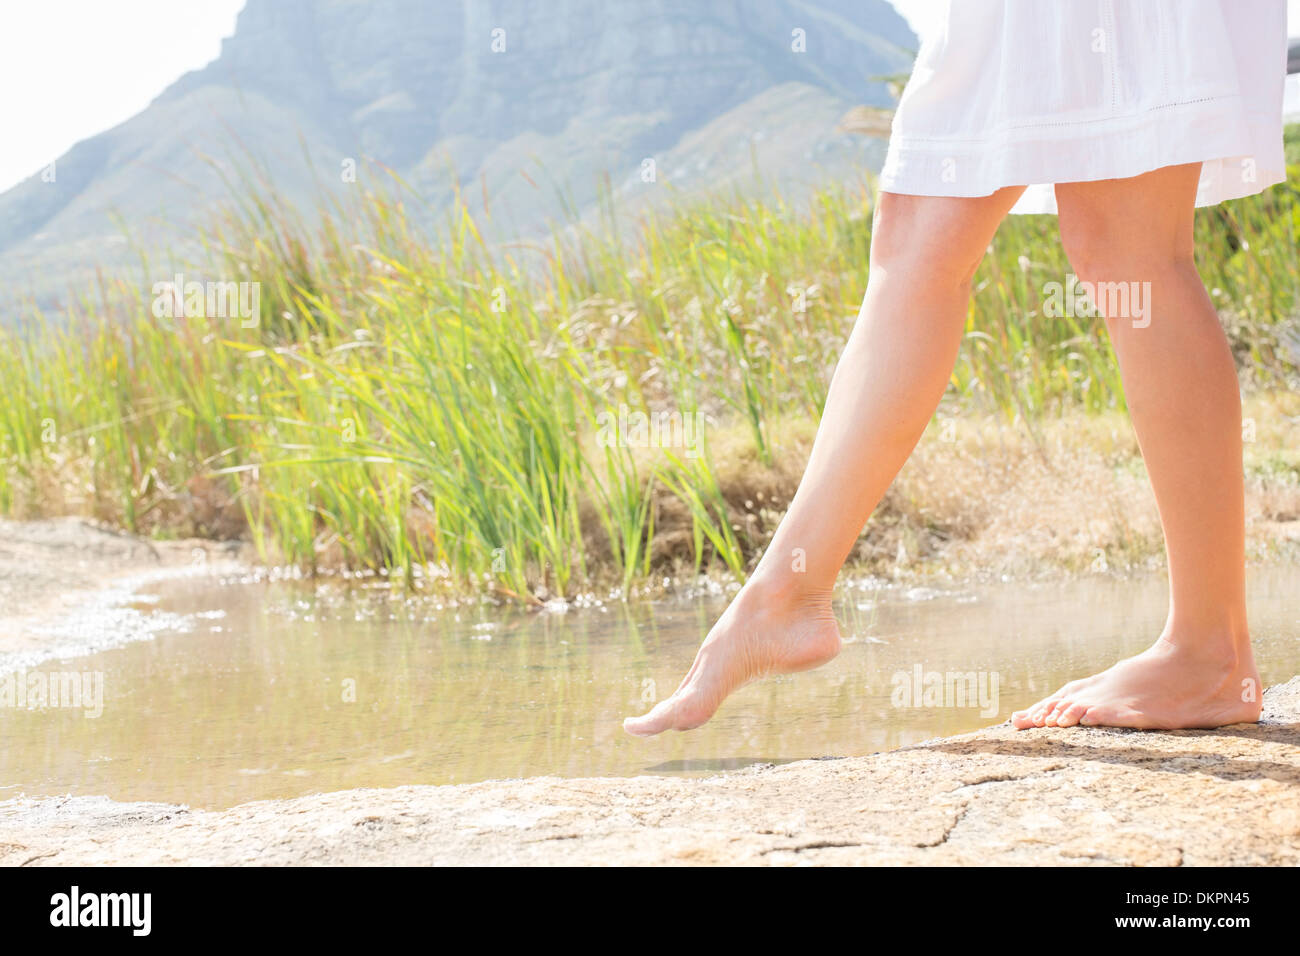 Woman dipping toe in rural pond - Stock Image